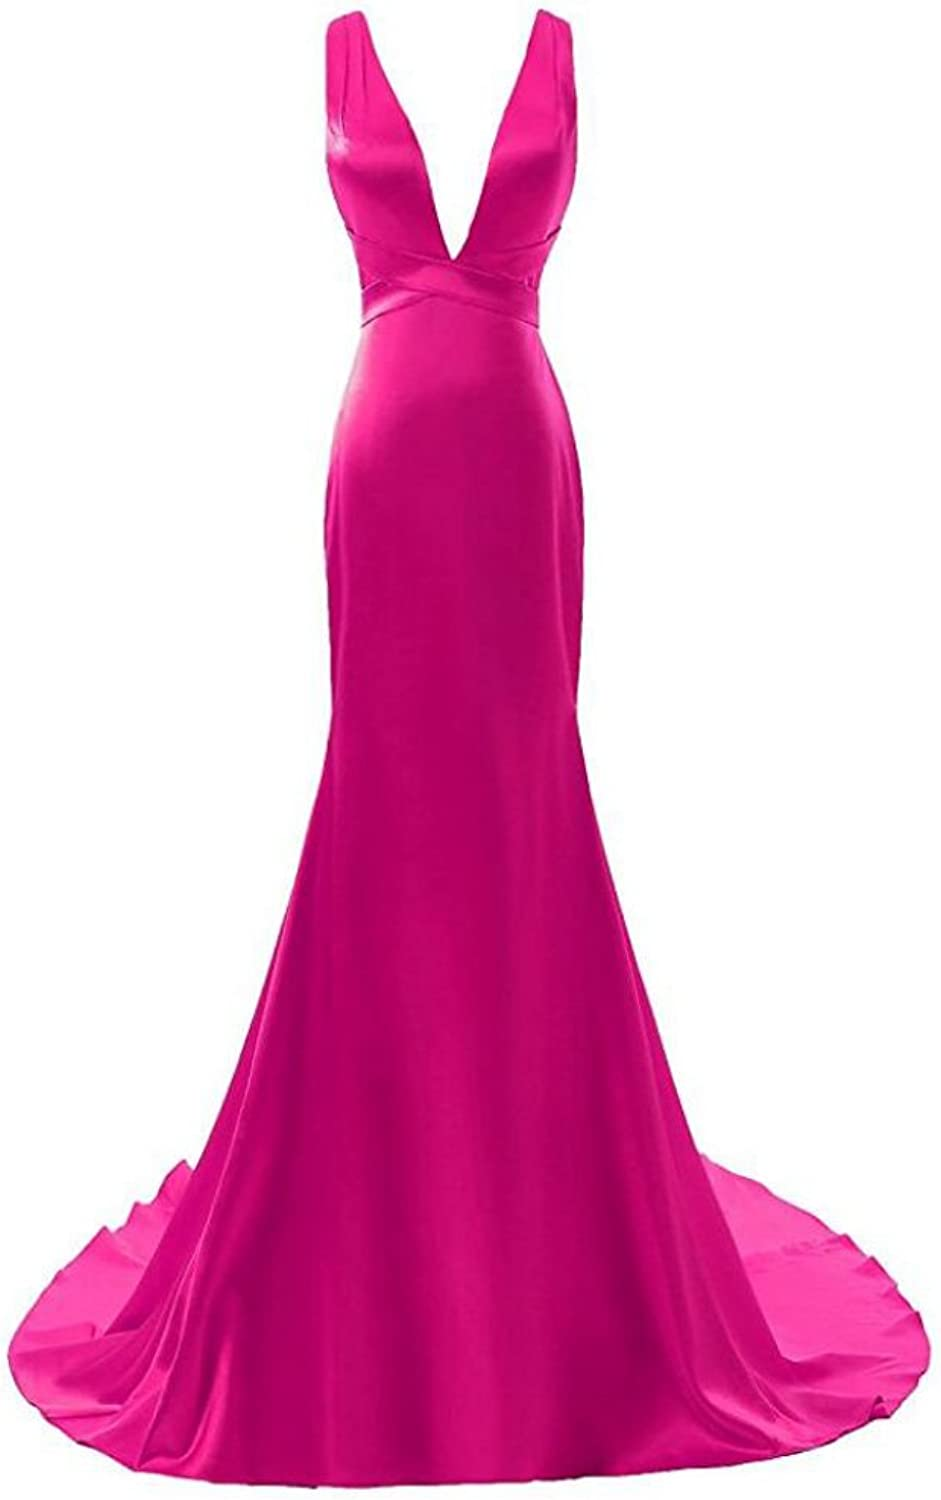 AK Beauty Women's Plunging Neckline Mermiad Prom Gown Long Evening Formal Dresses